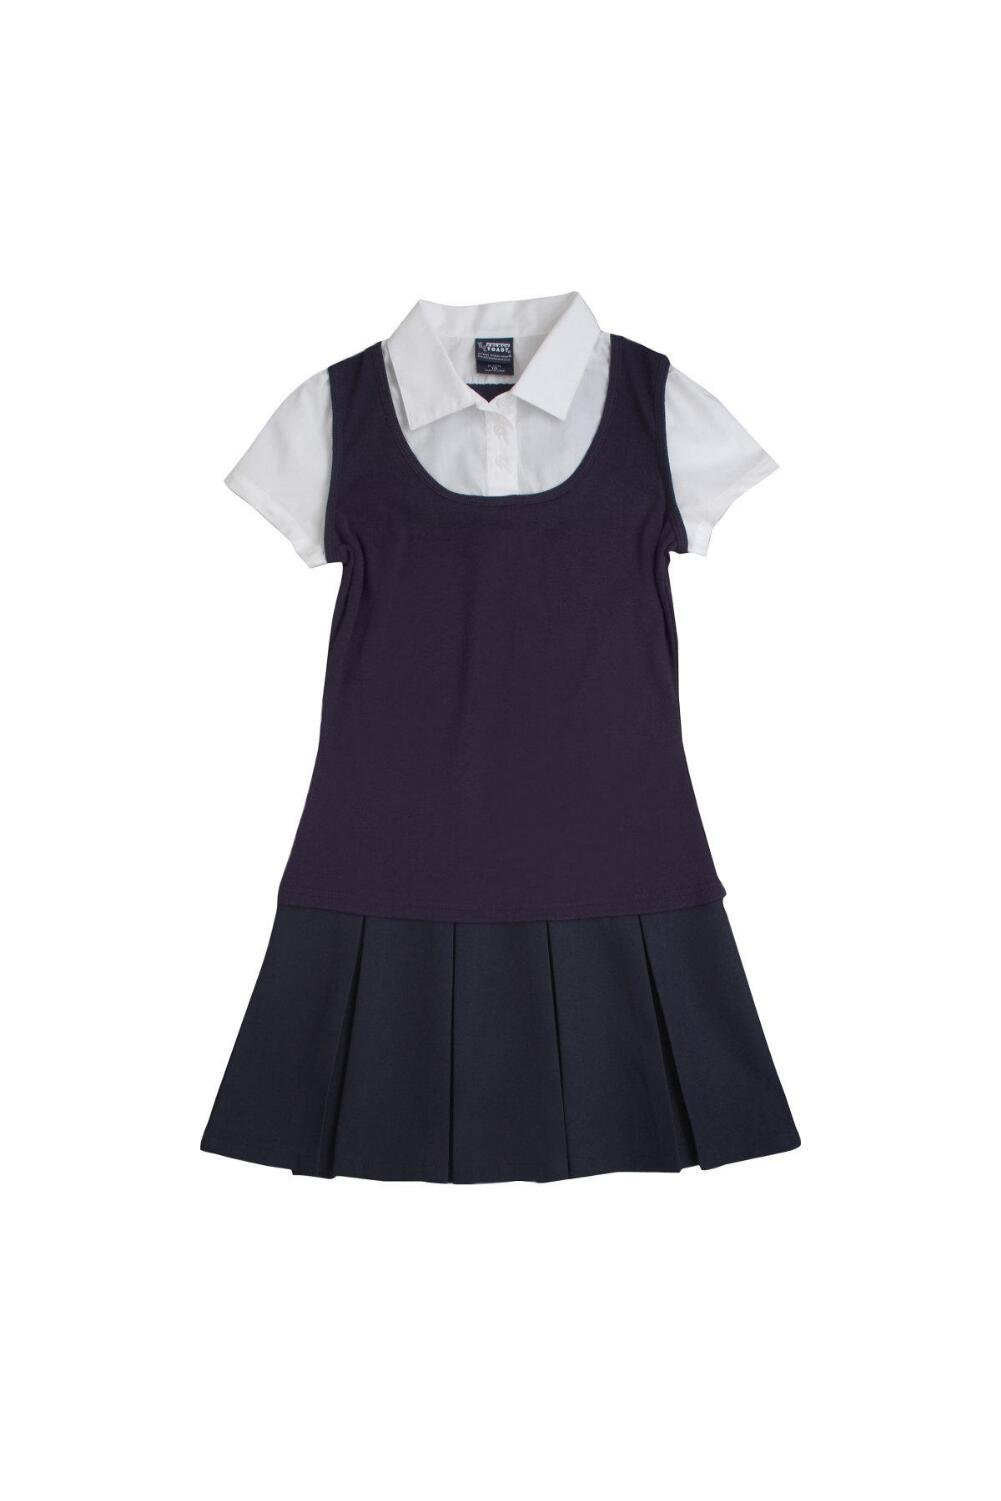 French Toast Little Girls' 2-Fer Pleated Dress, Navy, 5